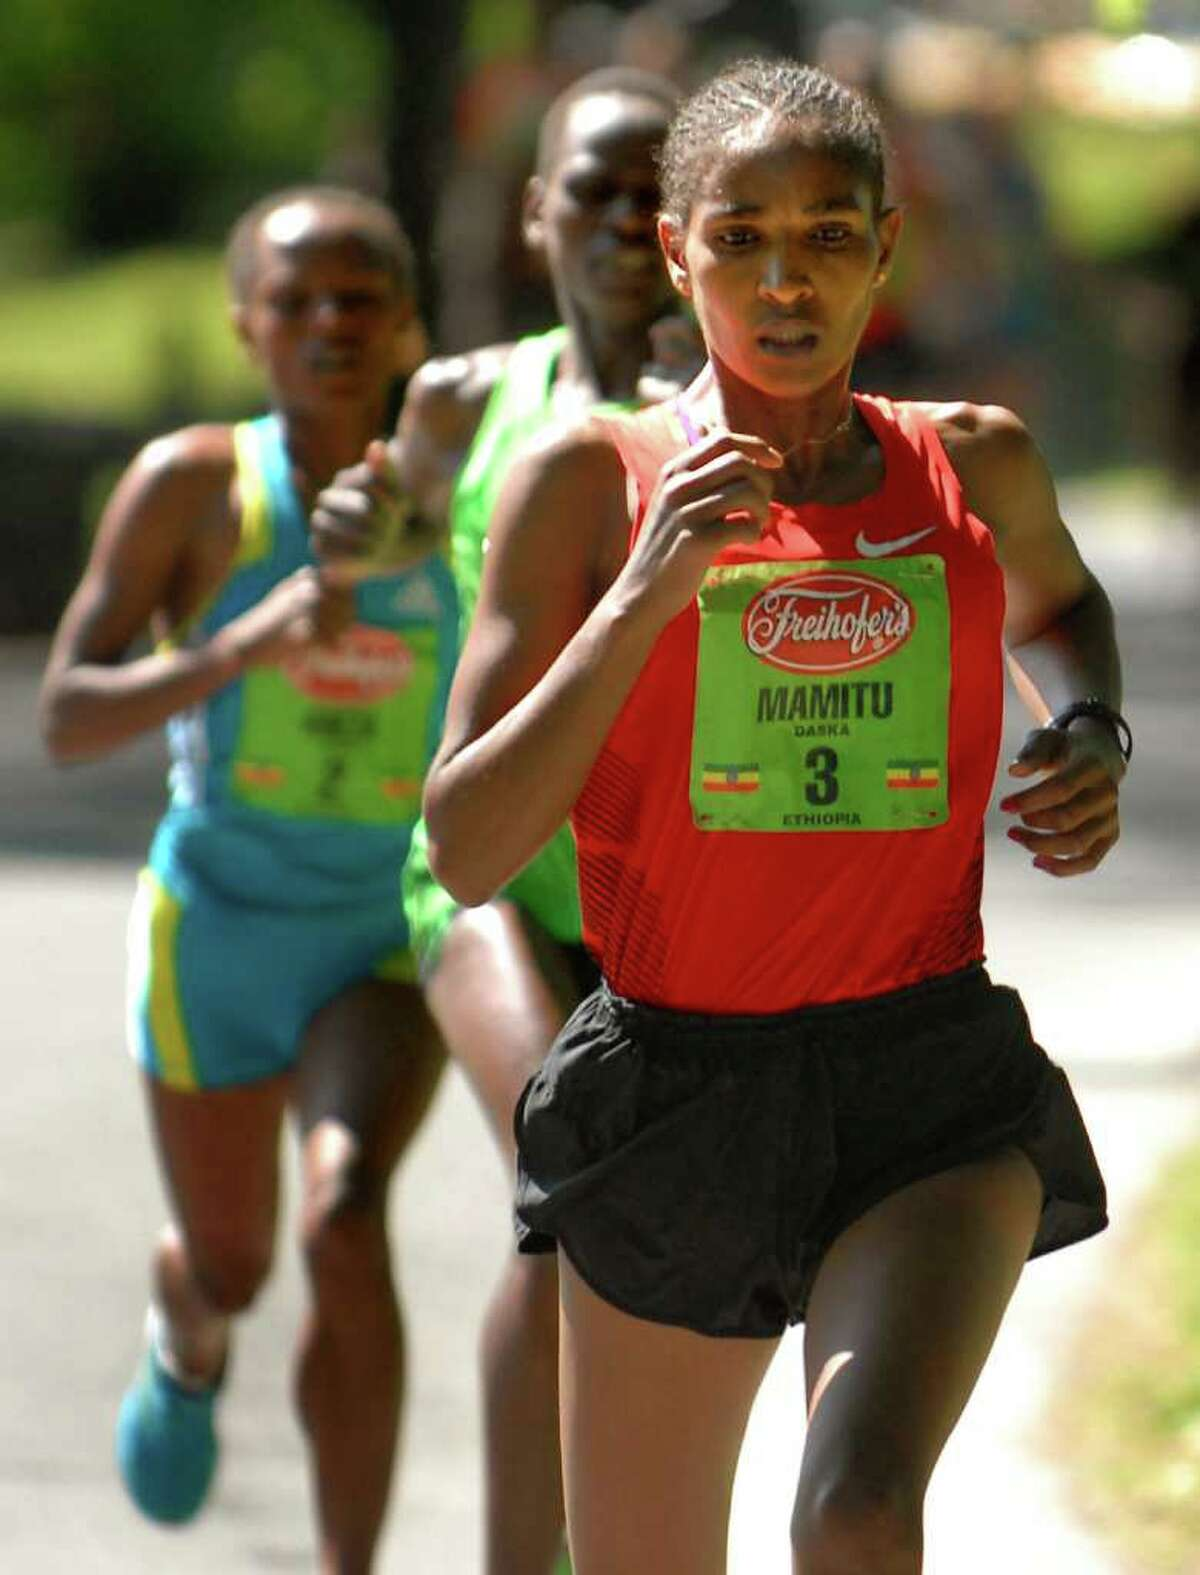 Mamitu Daska (3) of Ethiopia runs in the lead, followed by Emily Chebet and Aheza Kiros during Freihofer's 33rd Run for Women on Saturday, June 4, 2011, in Albany, N.Y. (Cindy Schultz / Times Union)